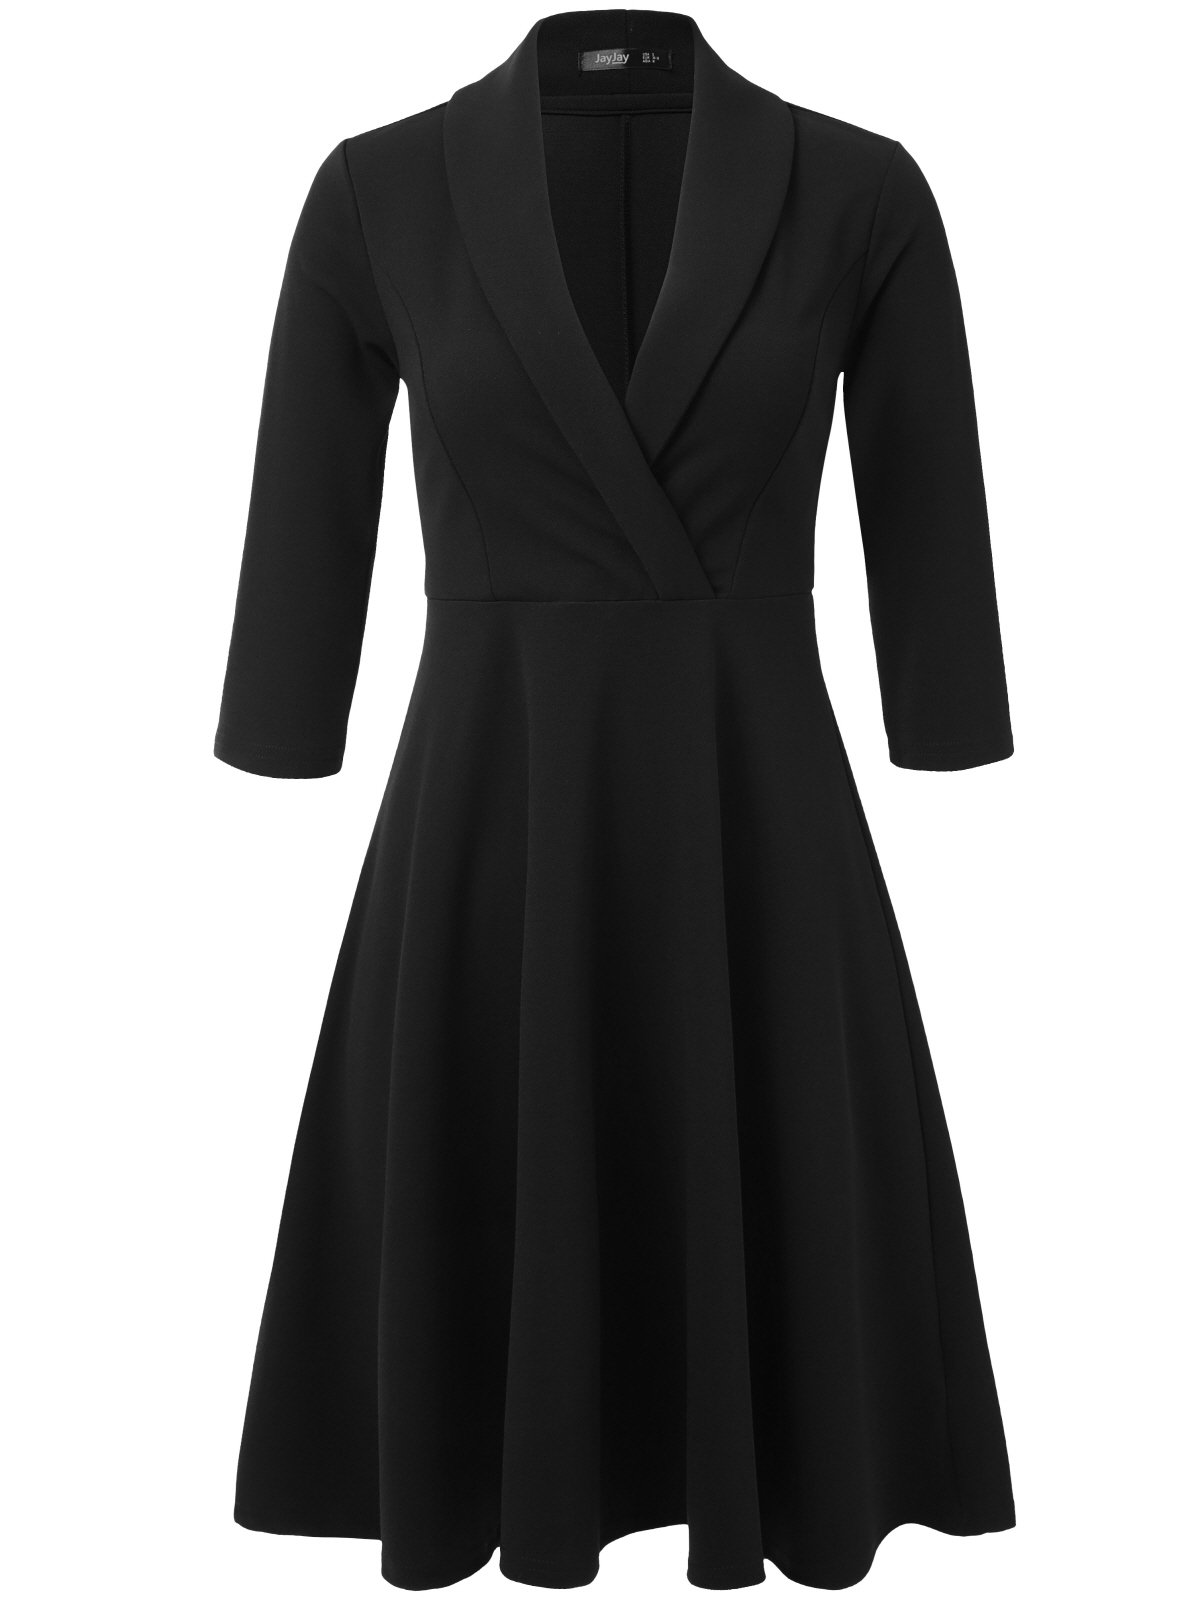 JayJay Women 3/4 Sleeve Wear To Work Lapel Party Fit and Flare Faux Wrap Dress,Black,L